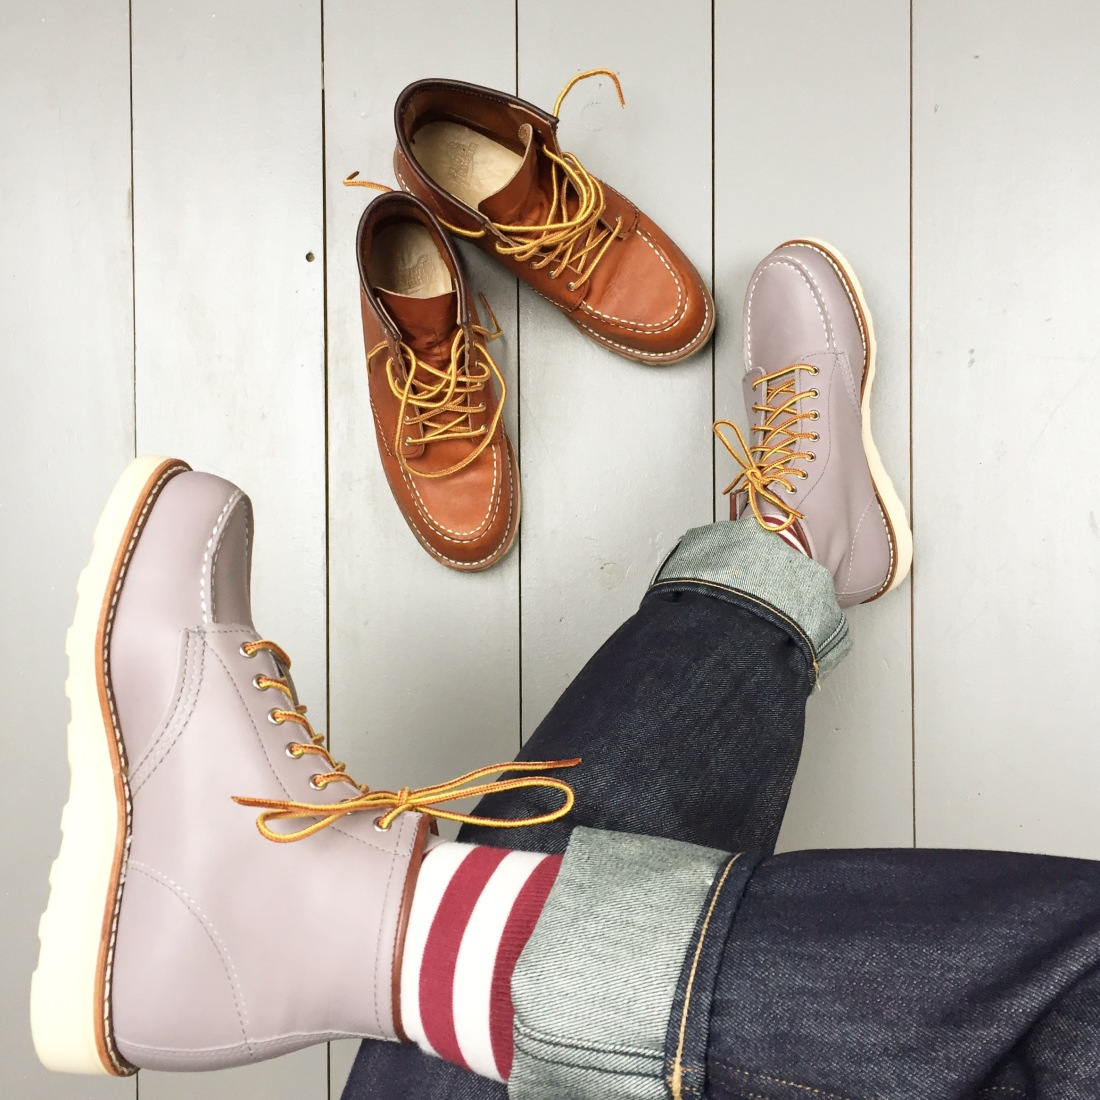 en-brogue-wearing-red-wing-grey-moc-boots